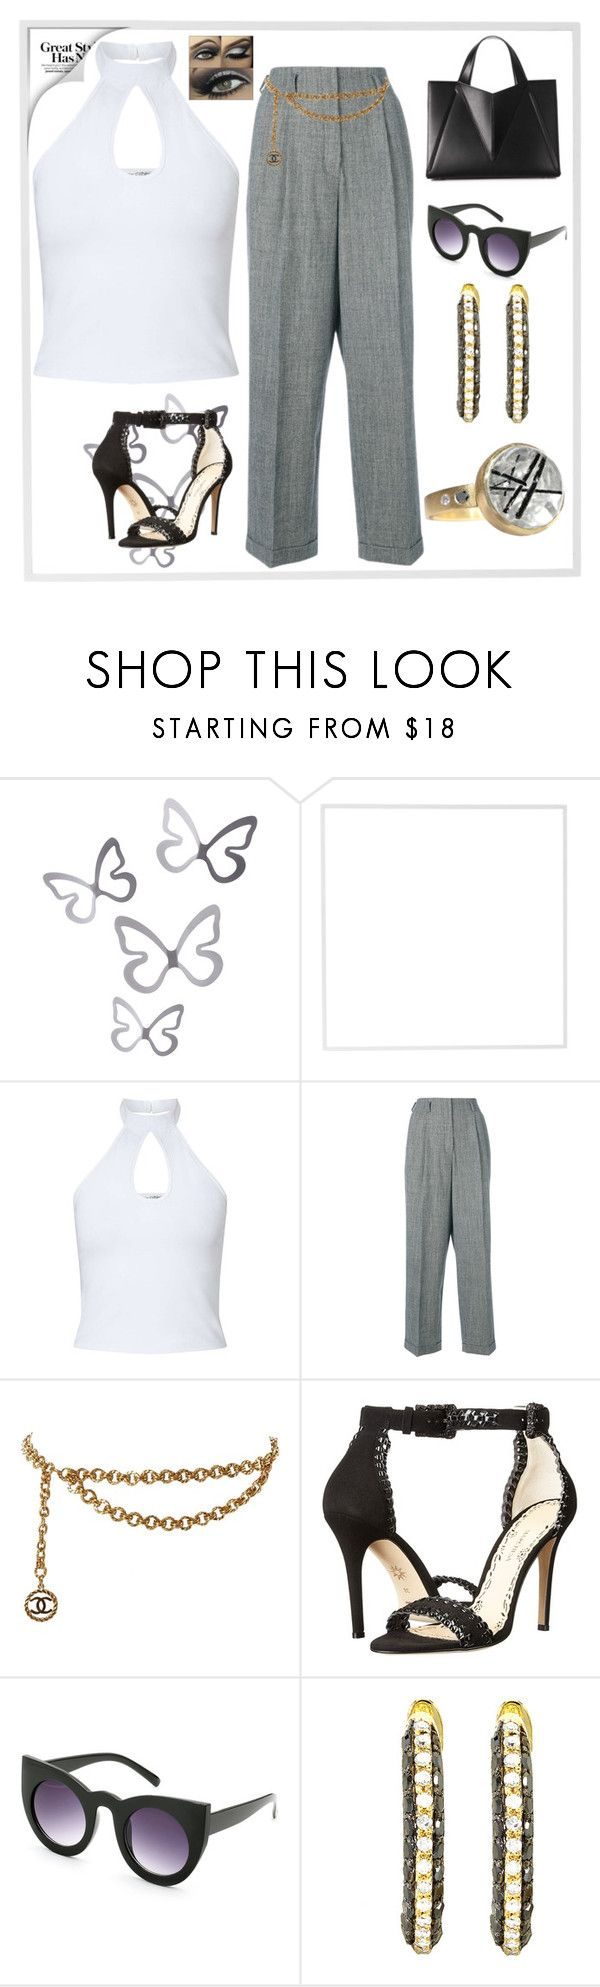 """""""Classy Gray"""" by gigi-sessions on Polyvore featuring Menu, Miss Selfridge, Odeeh, Chanel and Marchesa"""